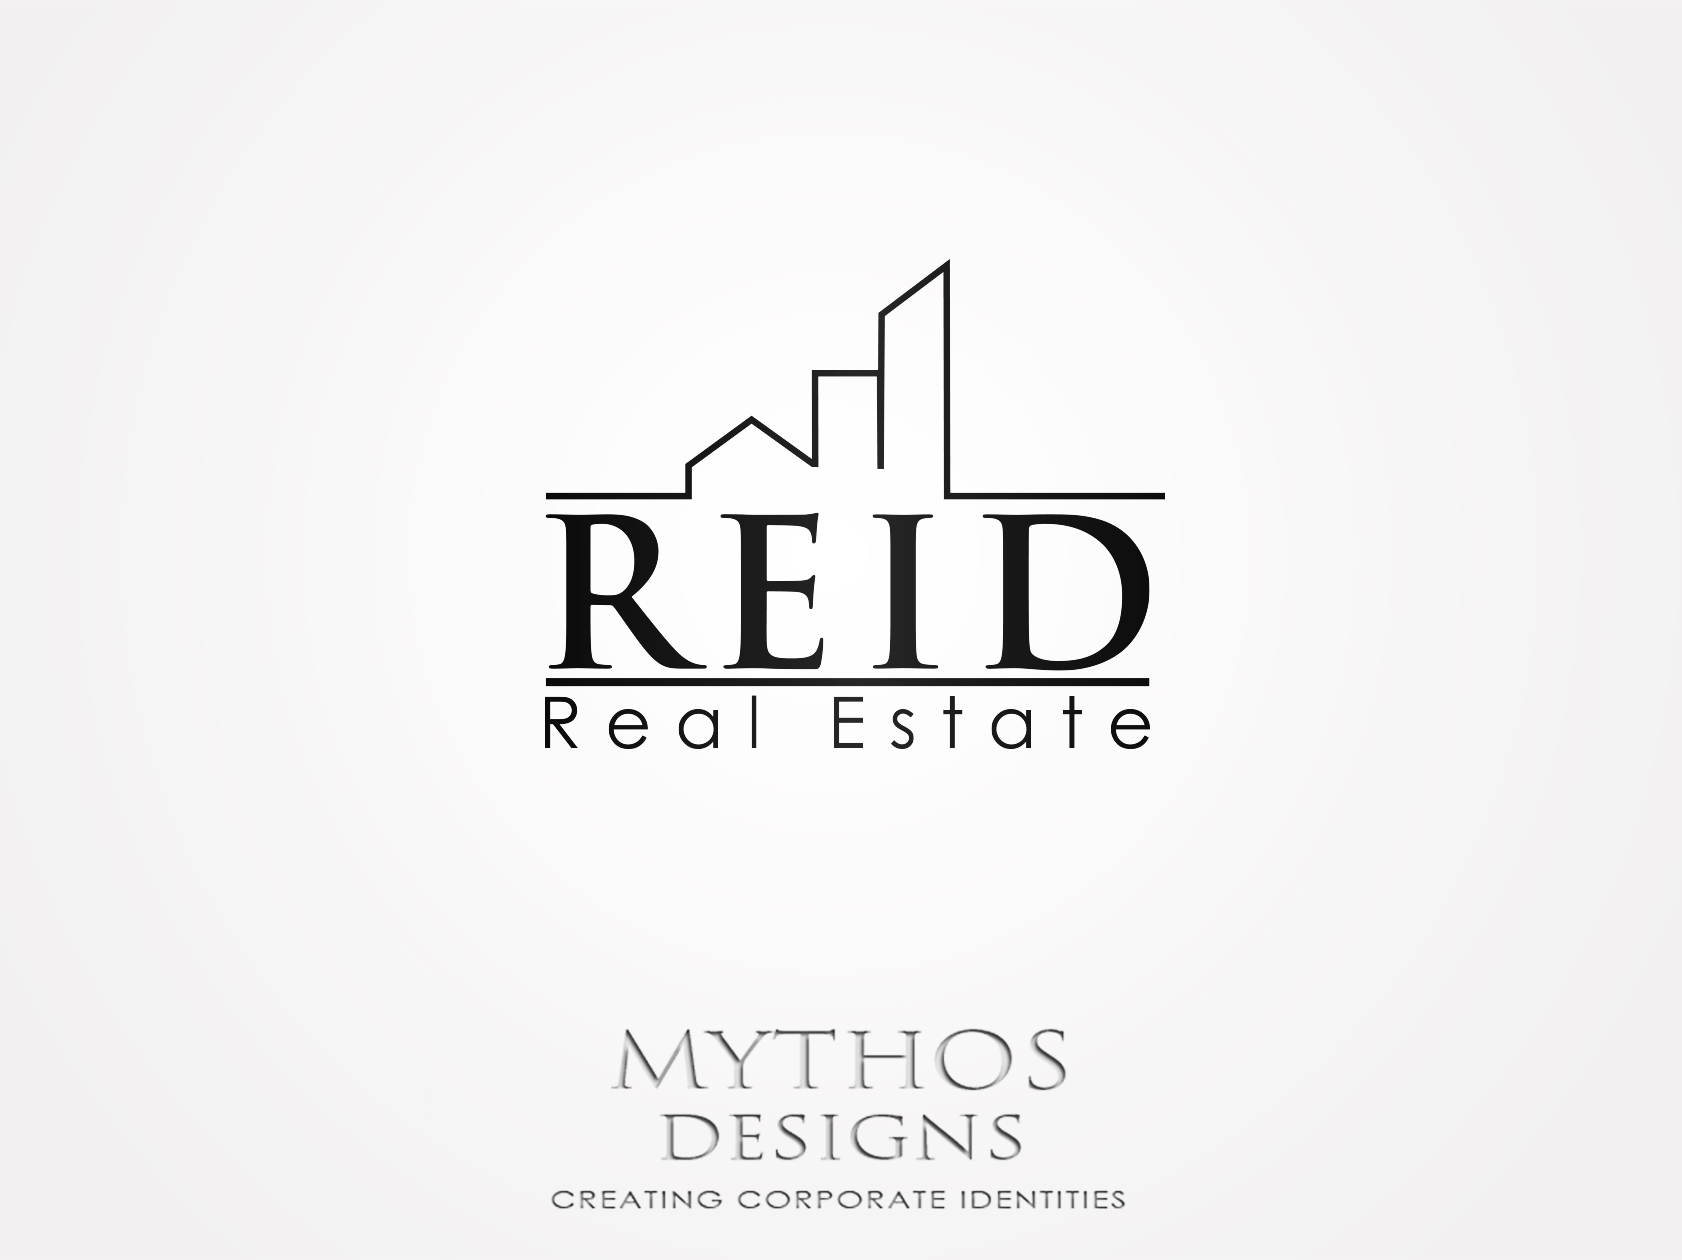 Logo Design by Mythos Designs - Entry No. 15 in the Logo Design Contest Artistic Logo Design for Hadden Properties.